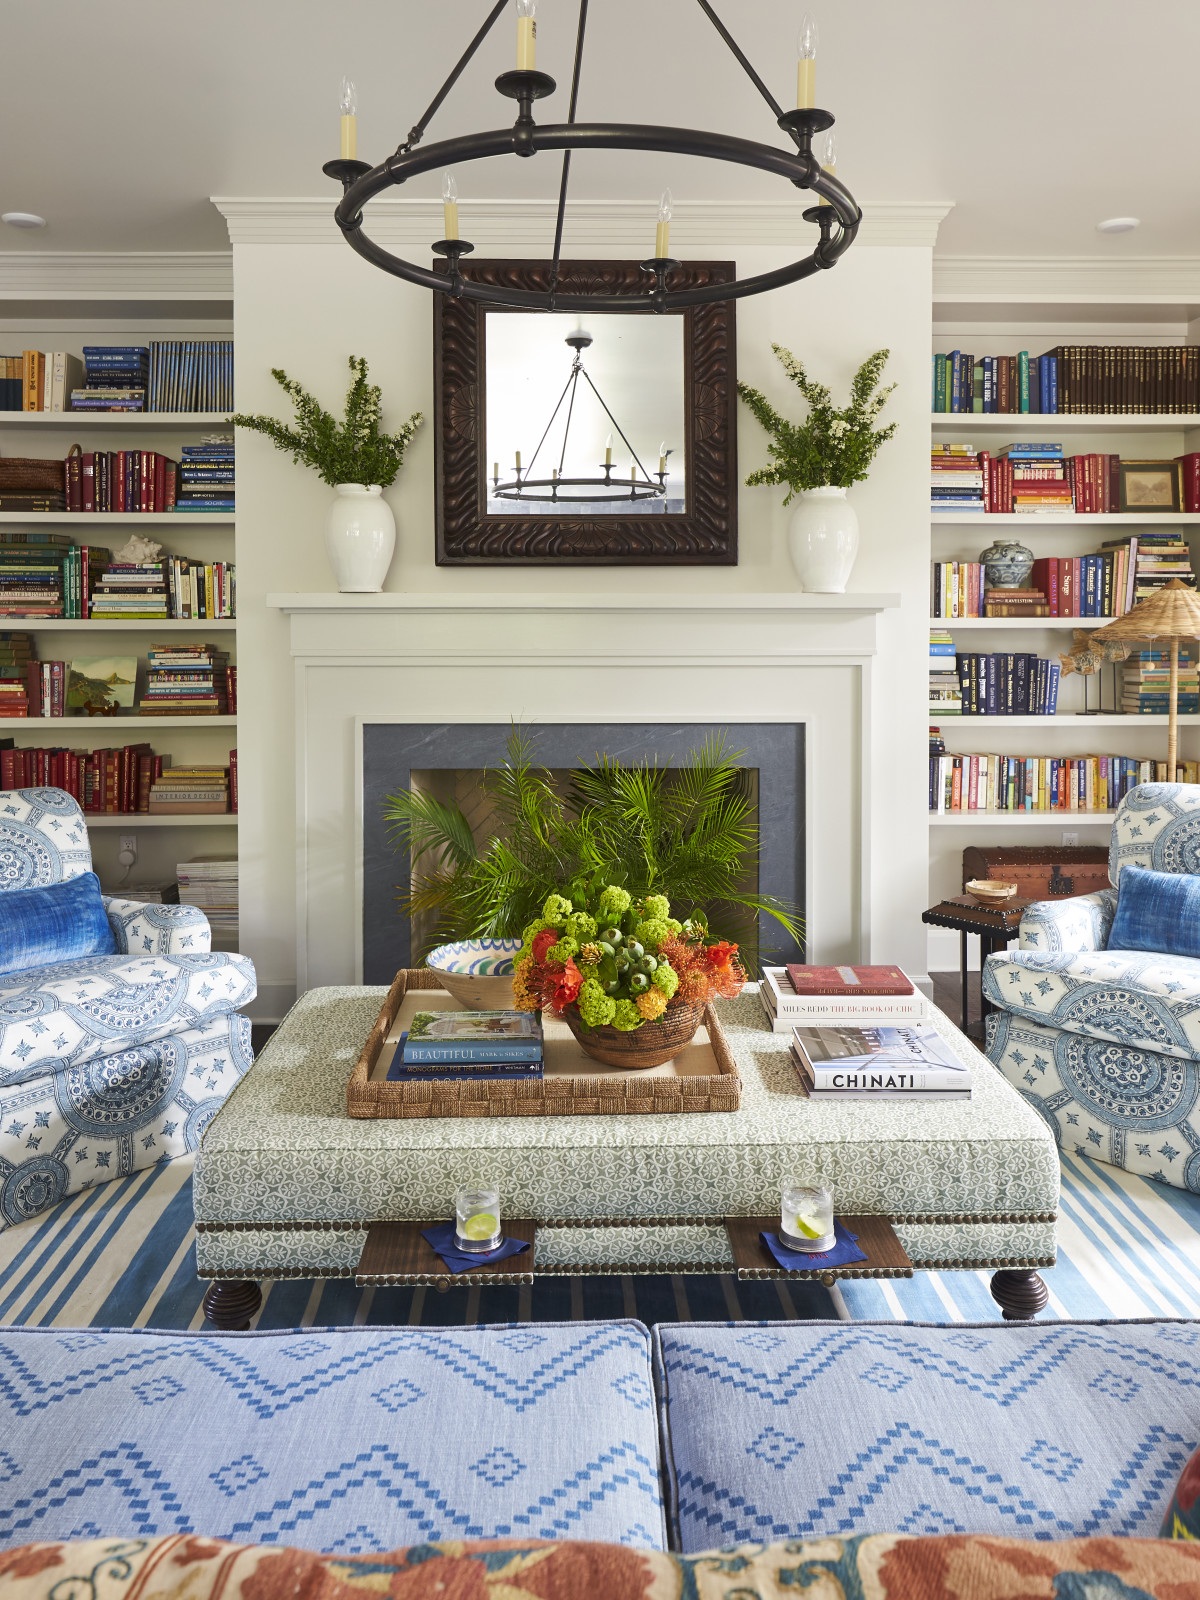 Southern Living chooses Texas home for famed 2018 Idea House ... on painting ideas, kitchen design ideas, home blueprints, home plans, living room ideas, unique home designs, furniture design, architectural home design, home theater designs, flooring ideas, decorating ideas, home interior design, home office designs, home decorating, home remodeling design, modern home design, luxurious house ideas, minimalist house ideas, kitchen design, kitchen ideas, gardening ideas, interior design, living room design, home bar designs, bathroom ideas, bathroom design, new house designs ideas, home designs small porch, american home design, small house plan ideas,